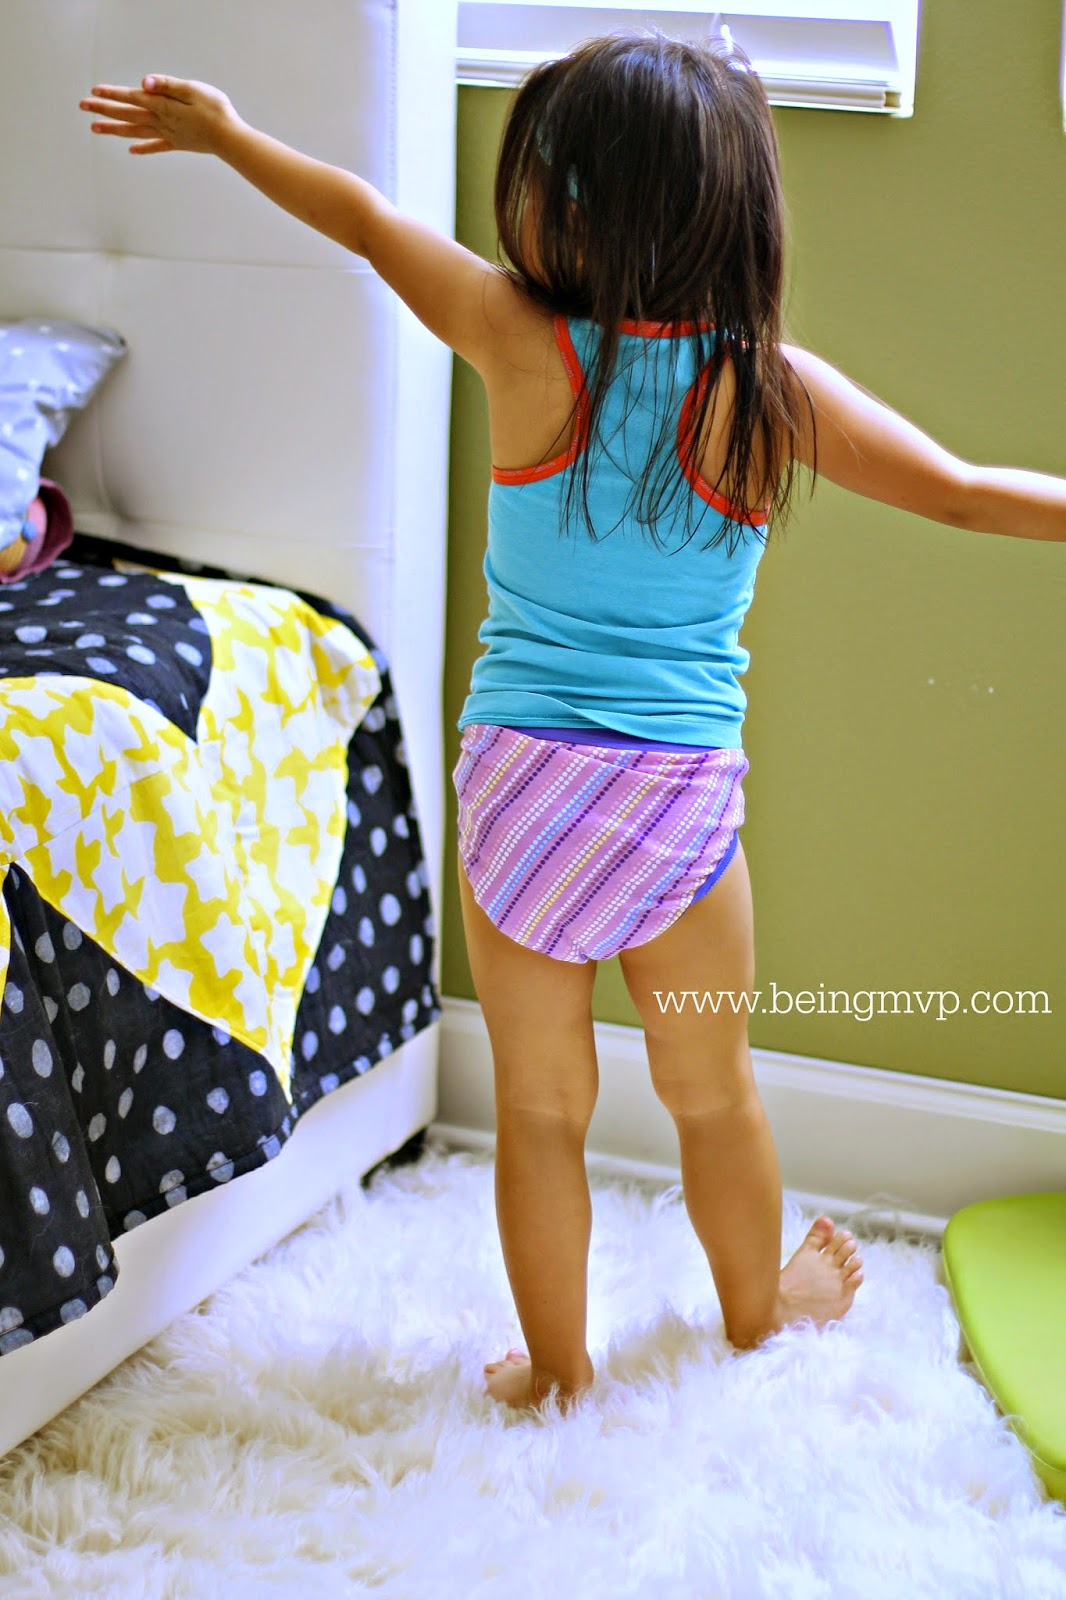 Being Mvp How To Handle Bedwetting Trufitwalmart Ad